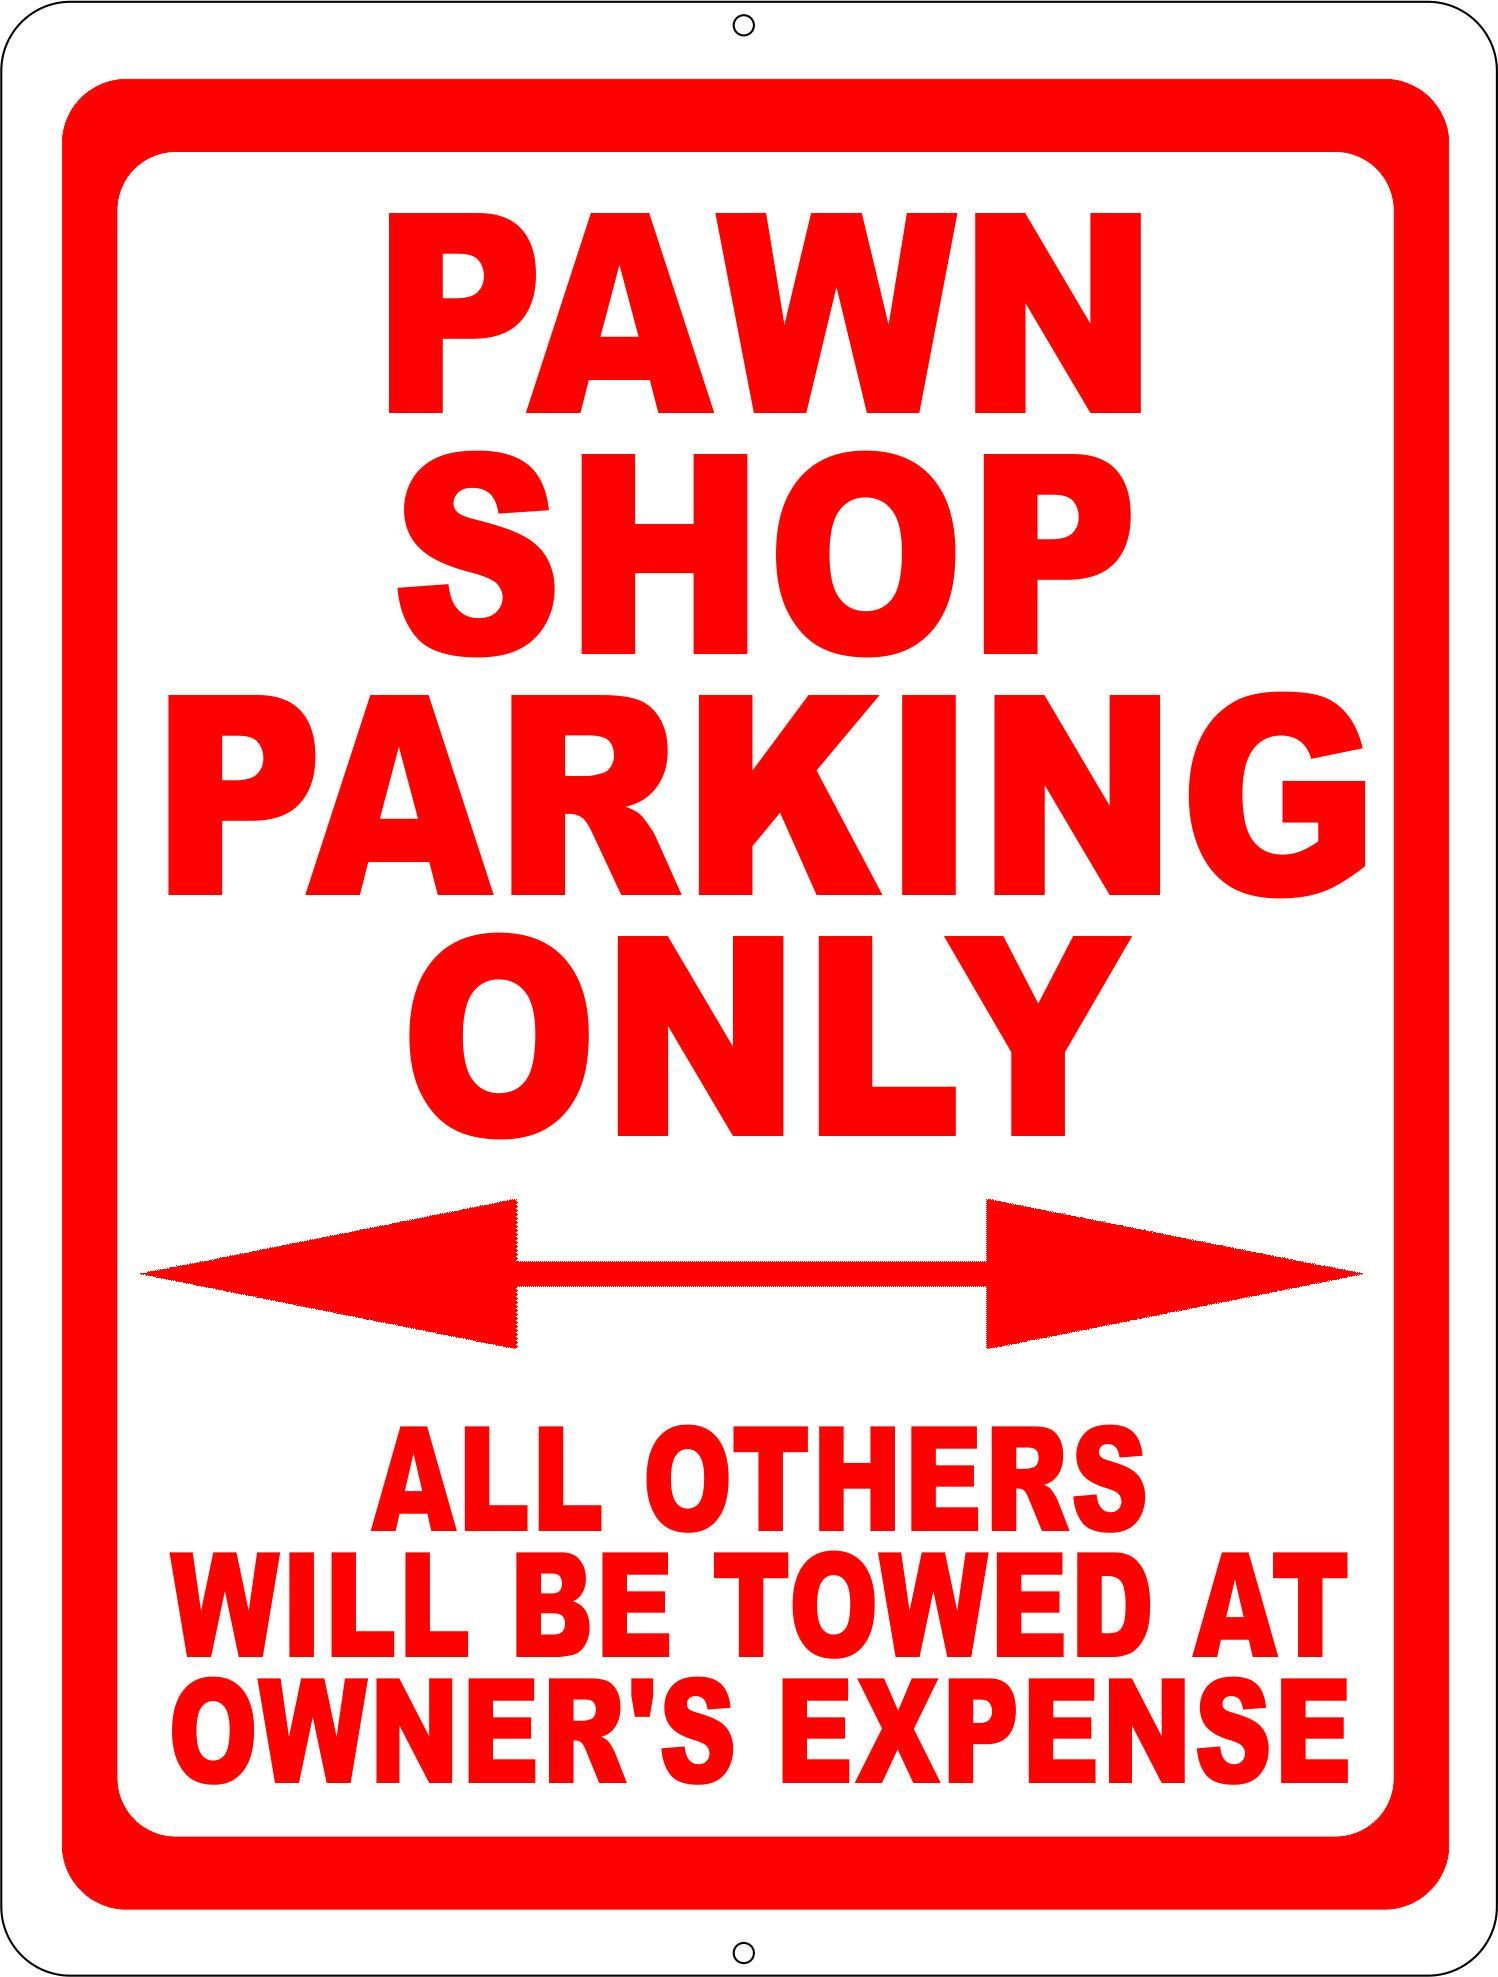 Parking Only All Others Towed At Owners Expense Sign